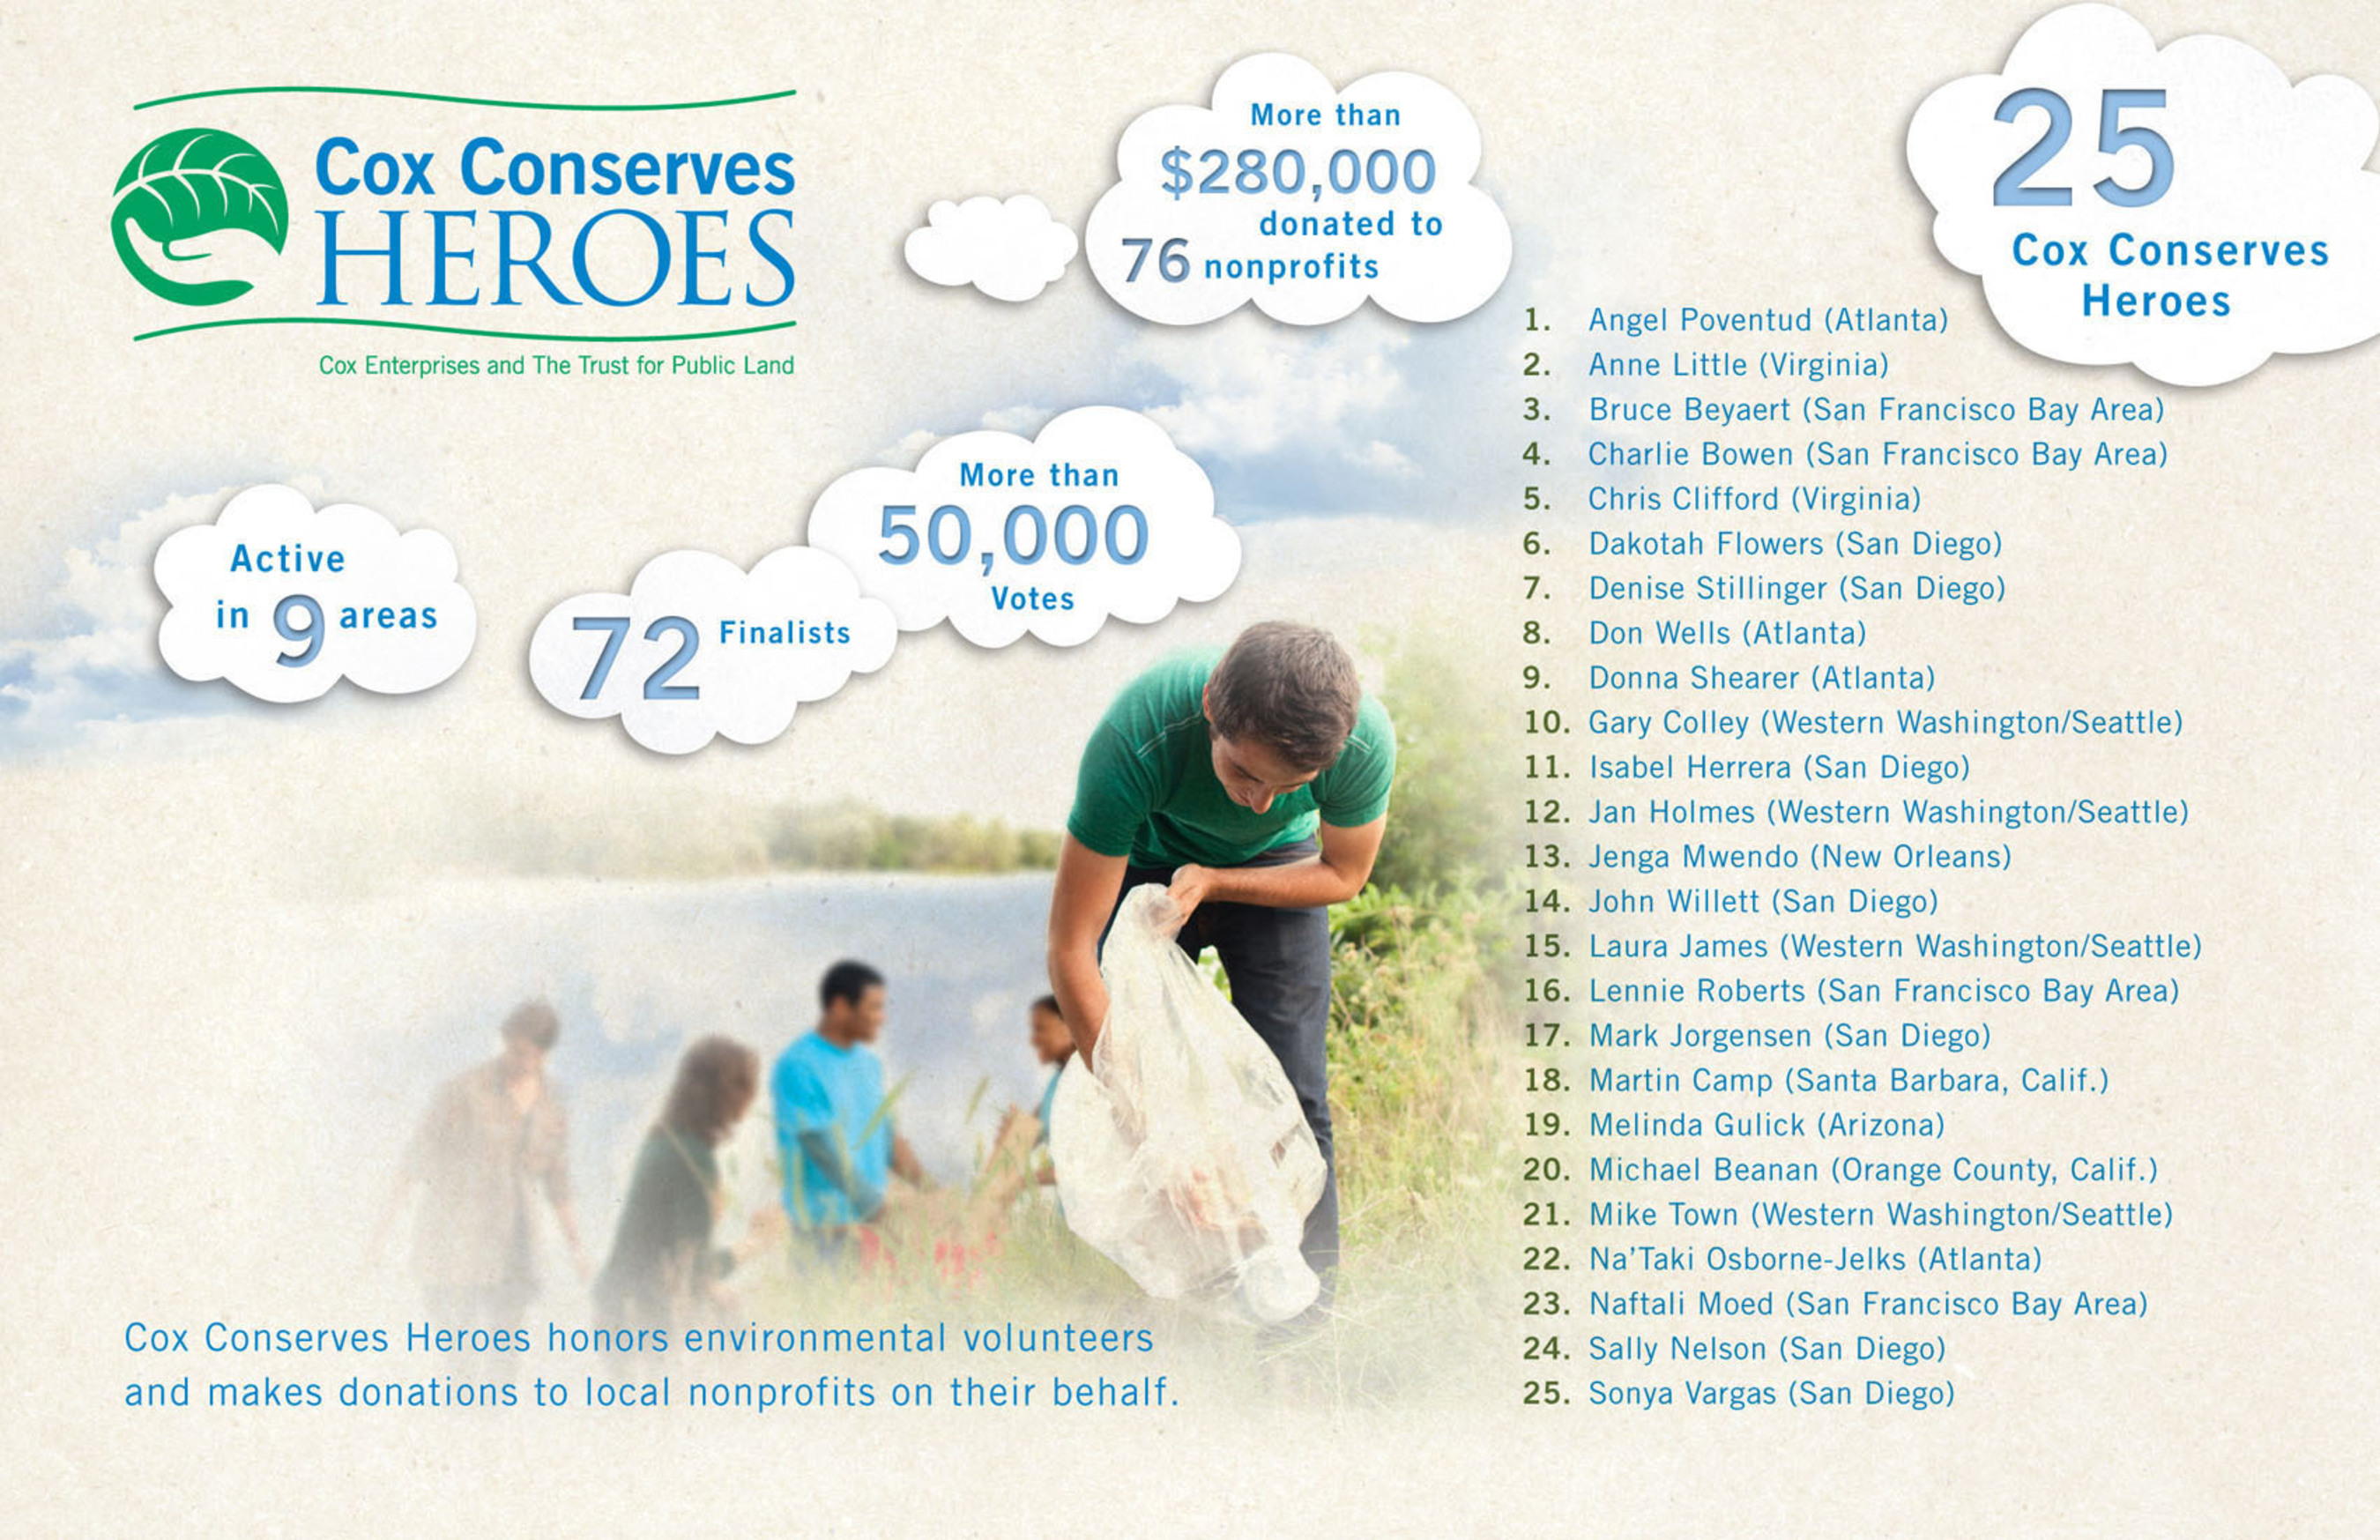 Cox and The Trust for Public Land Announce 25th Cox Conserves Hero